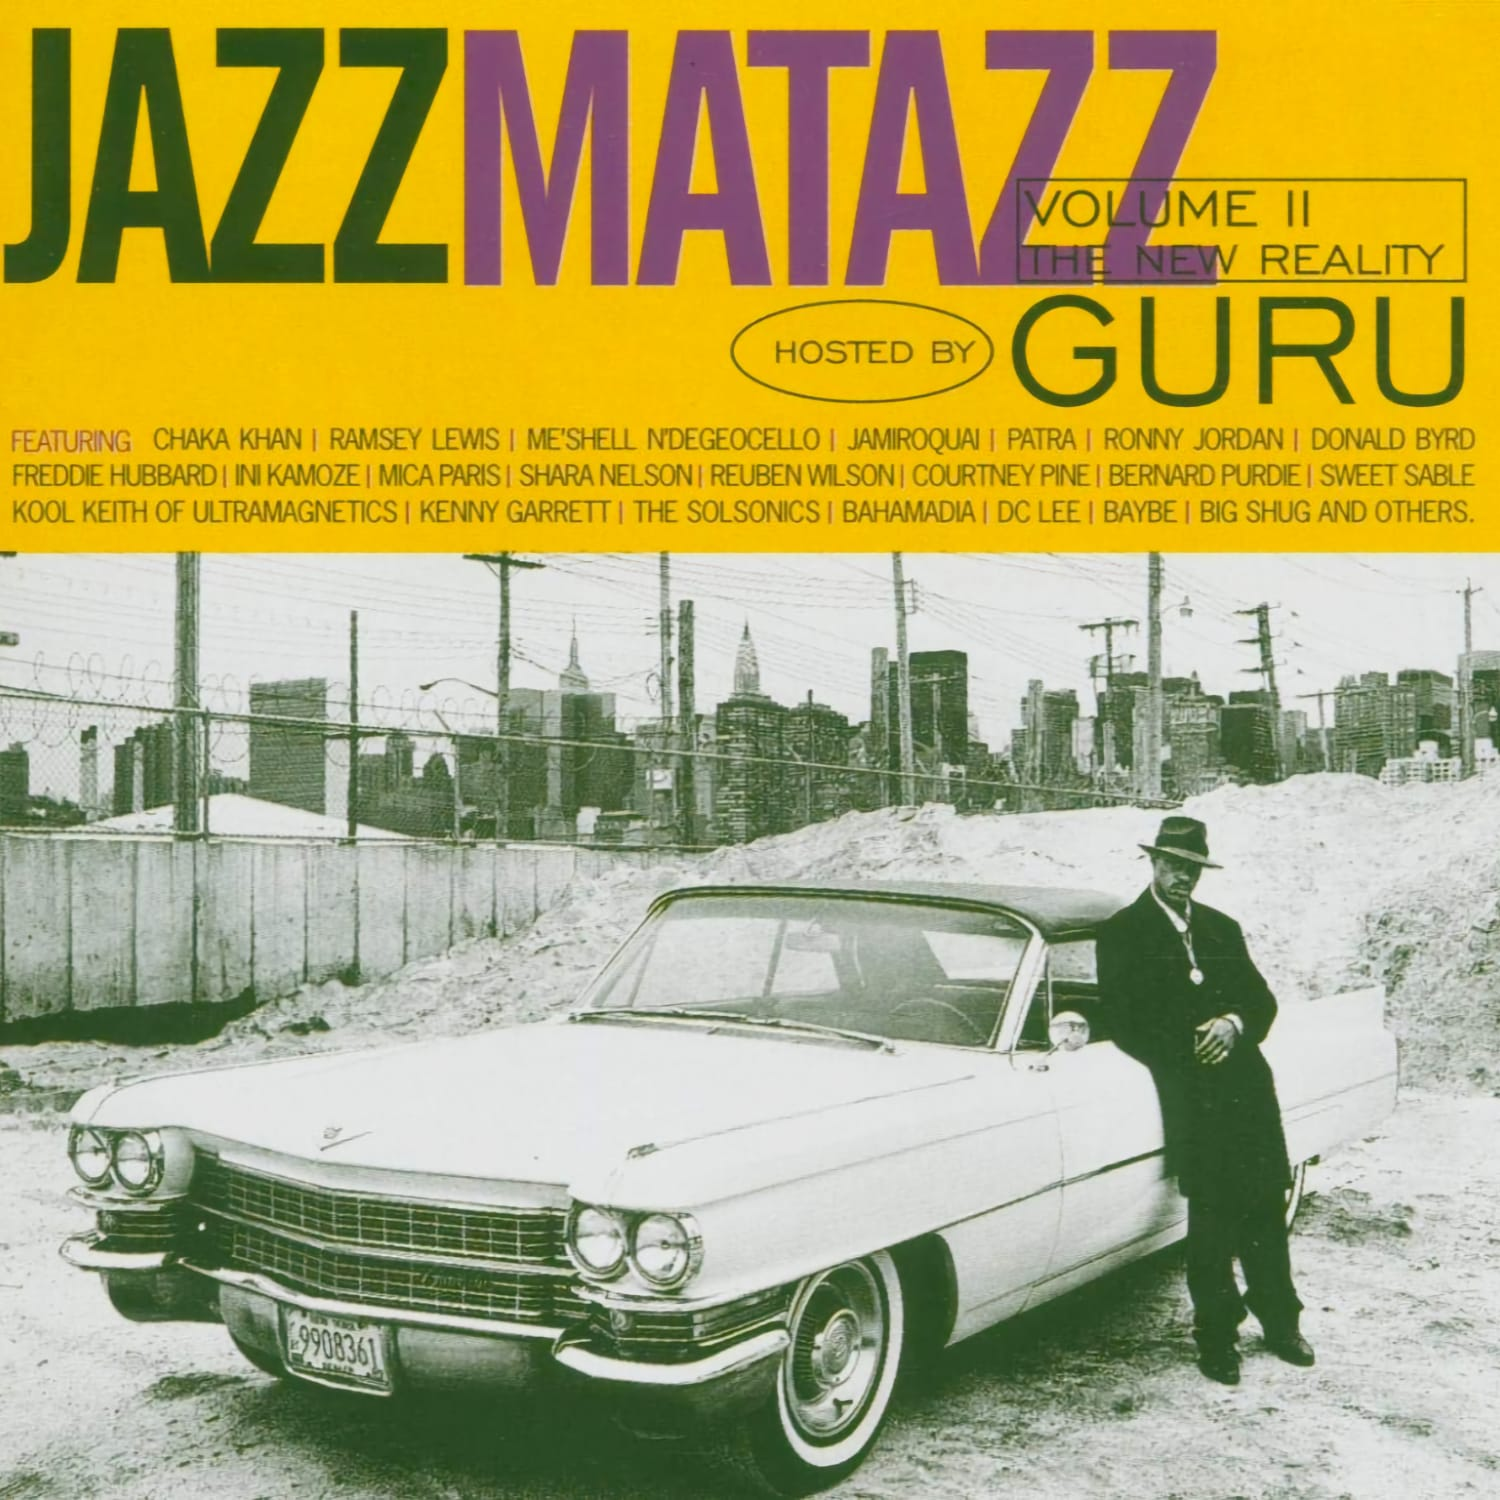 Guru - Jazzmatazz Volume 2 The New Reality